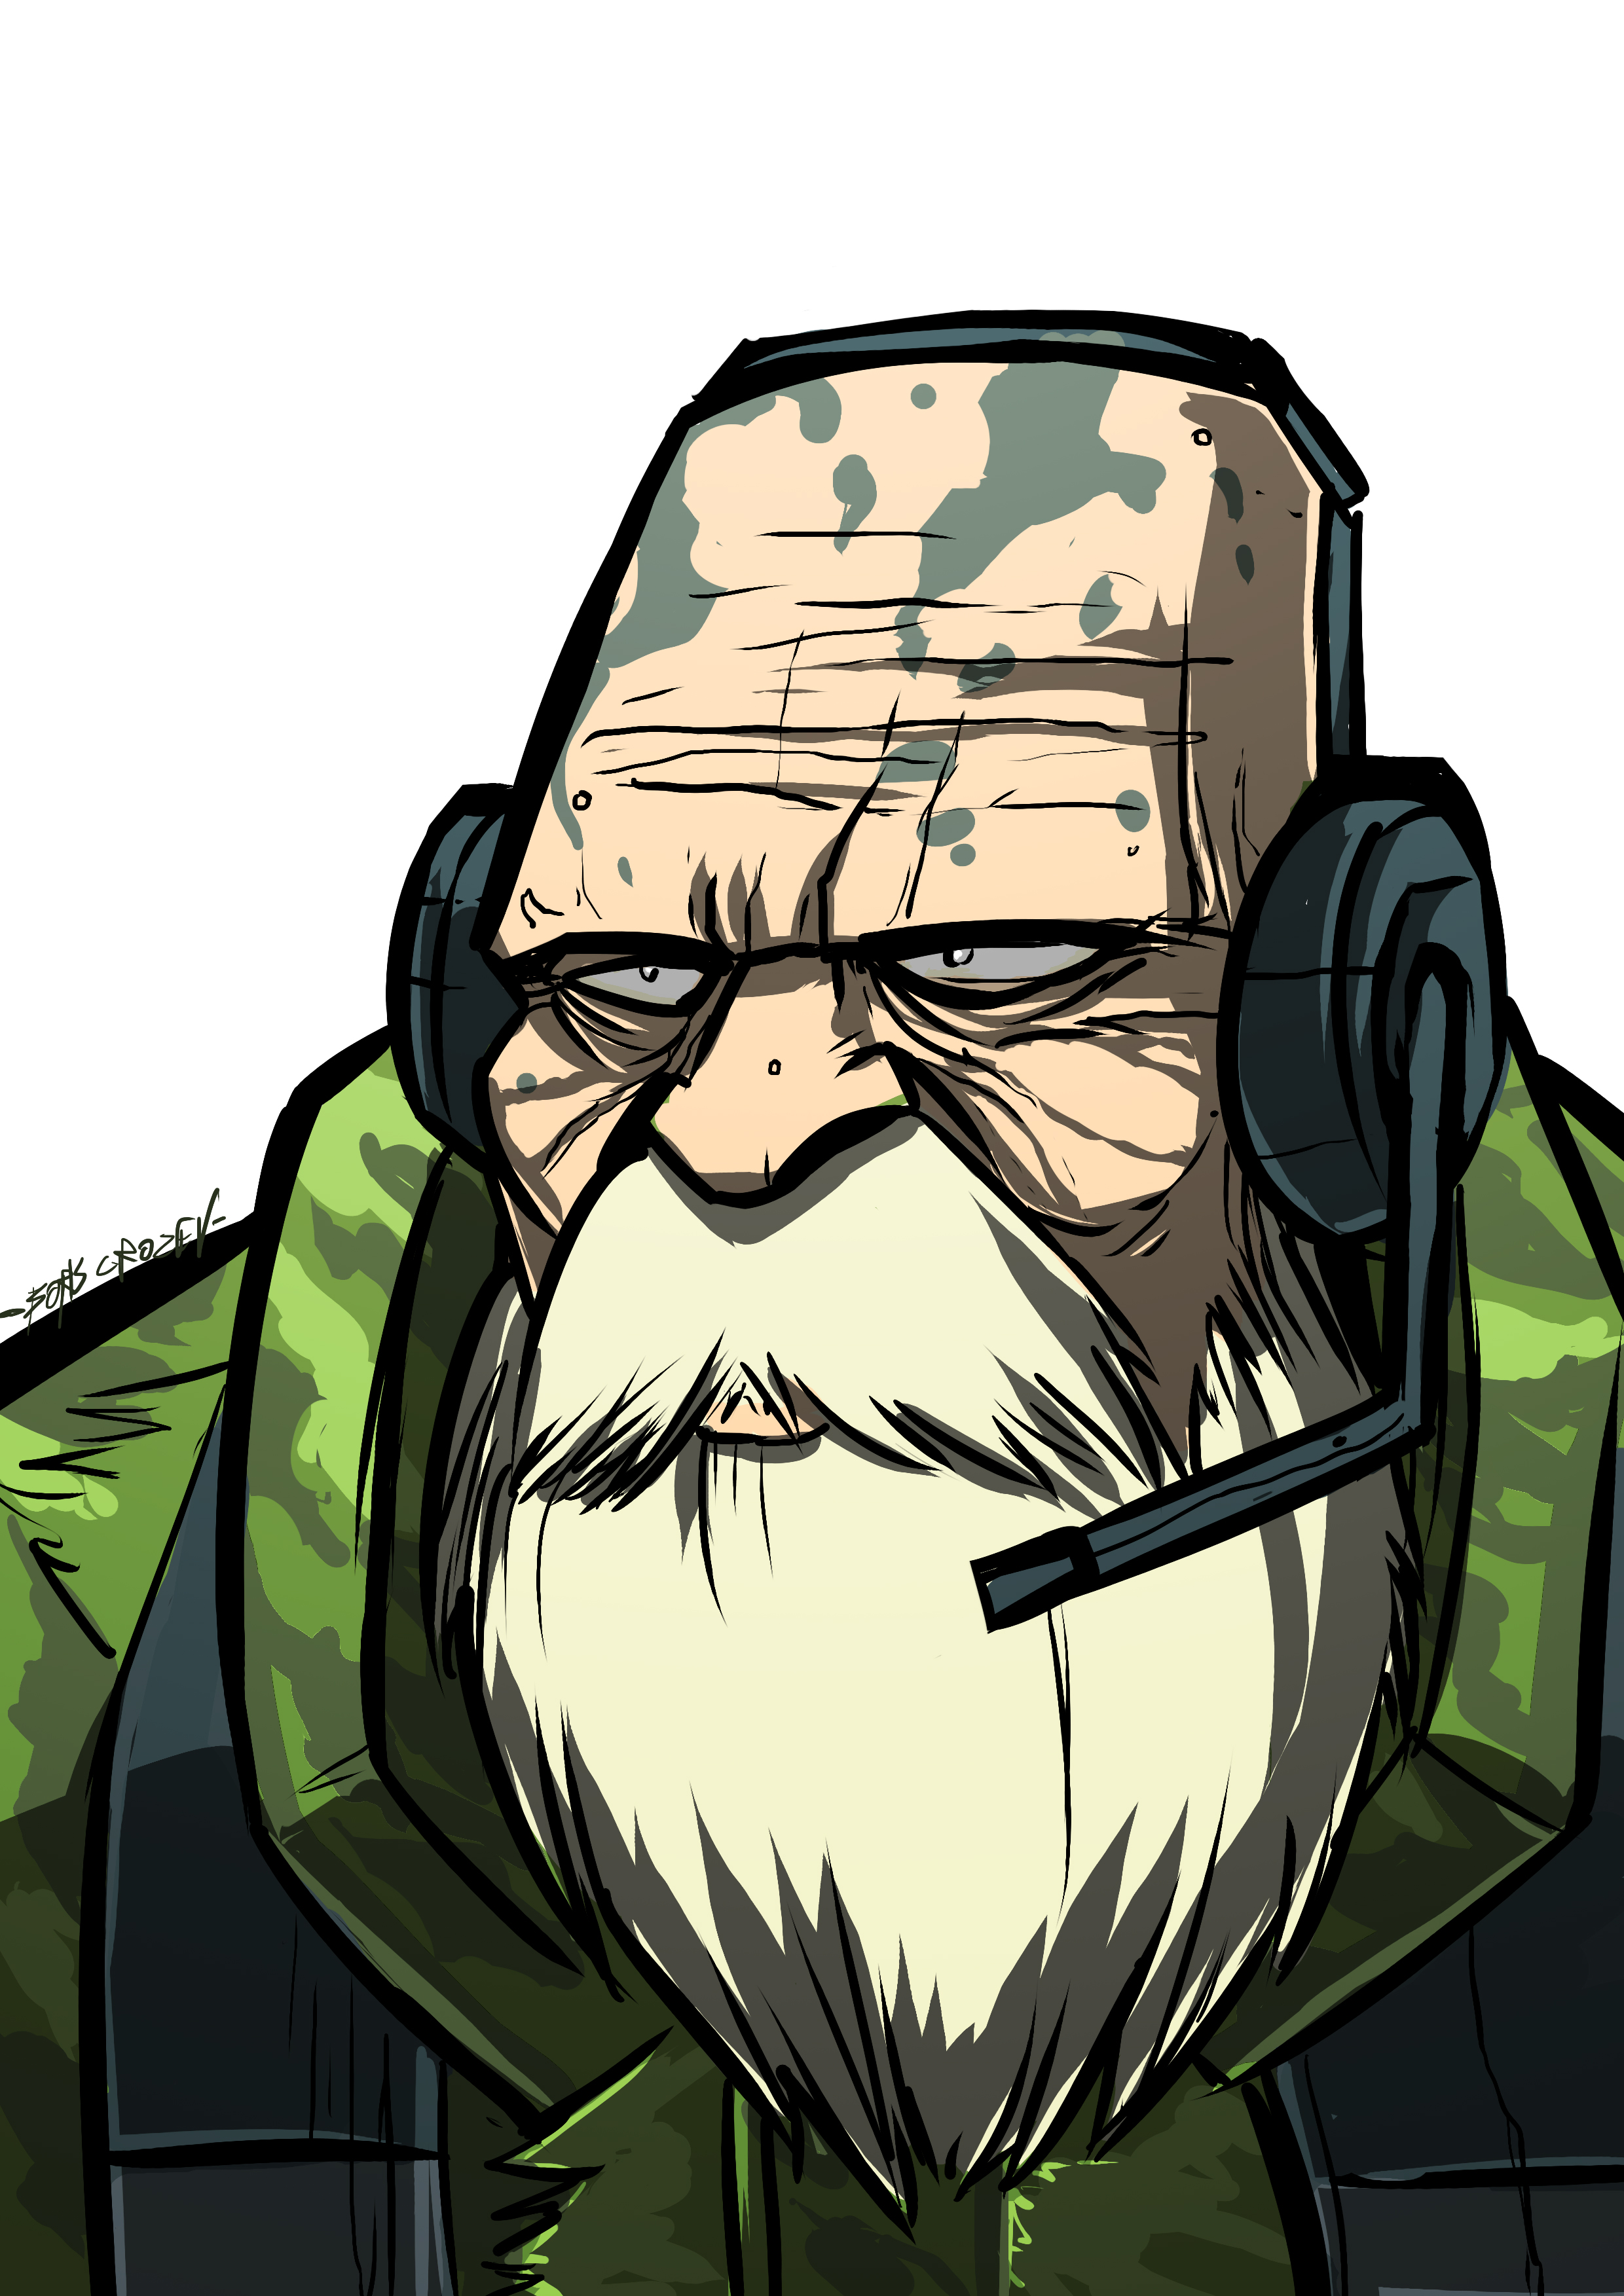 THE FATHER OF SNIPING